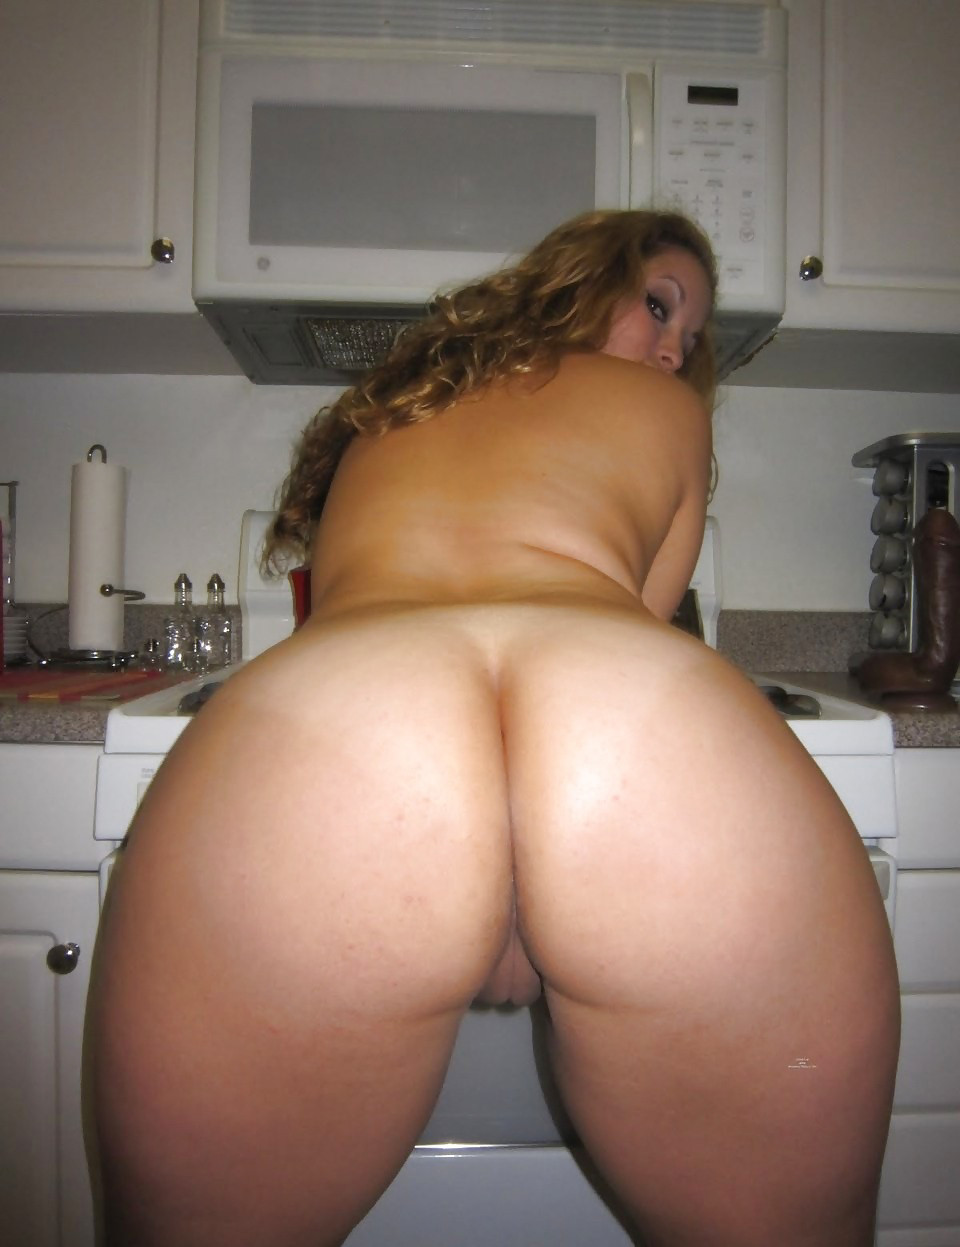 curvy big ass videos-porn videoonline